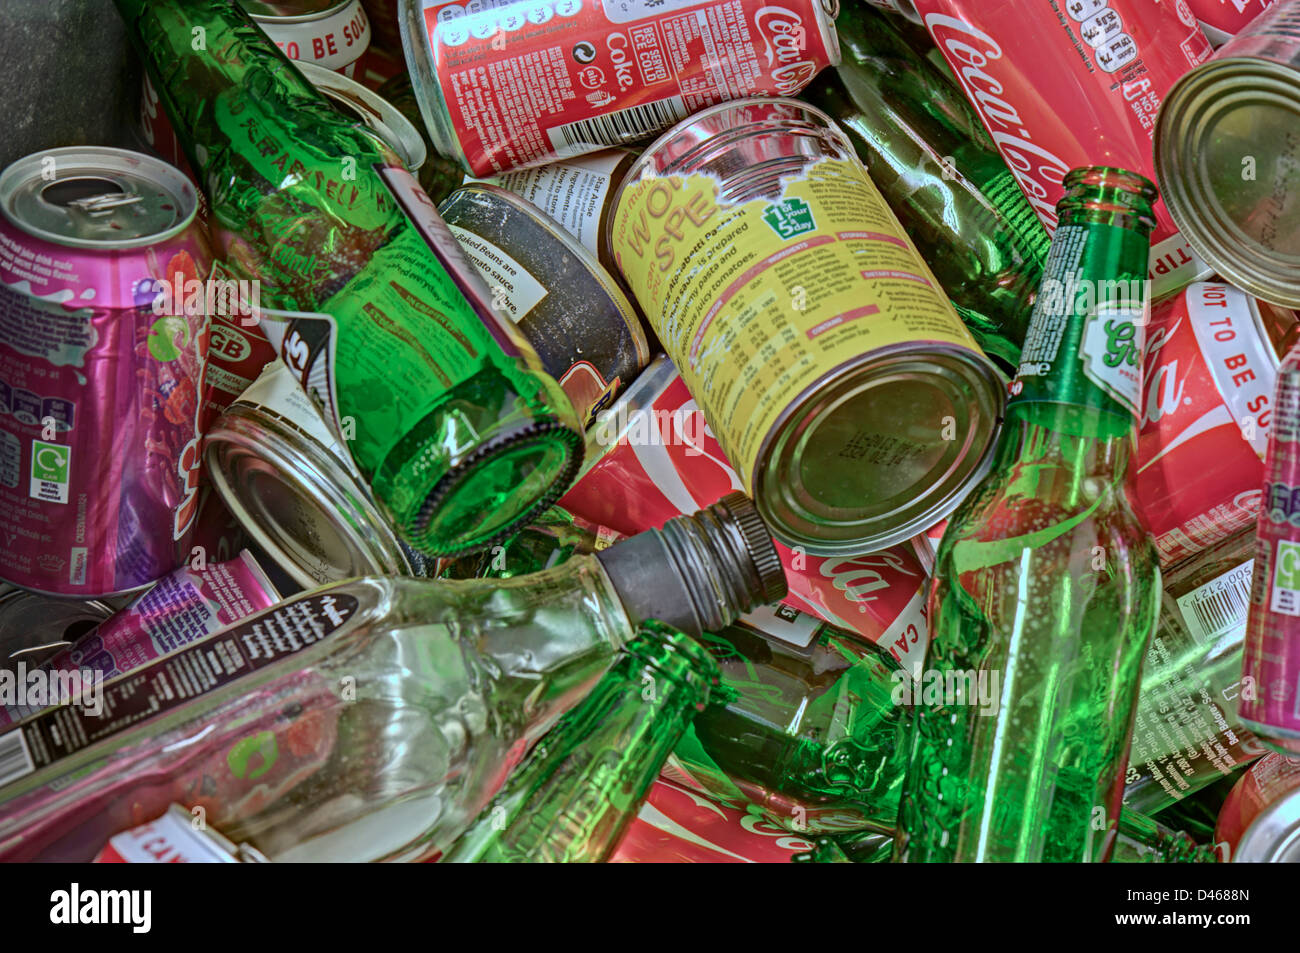 Close-up of bottles, tins and cans for recycling - Stock Image